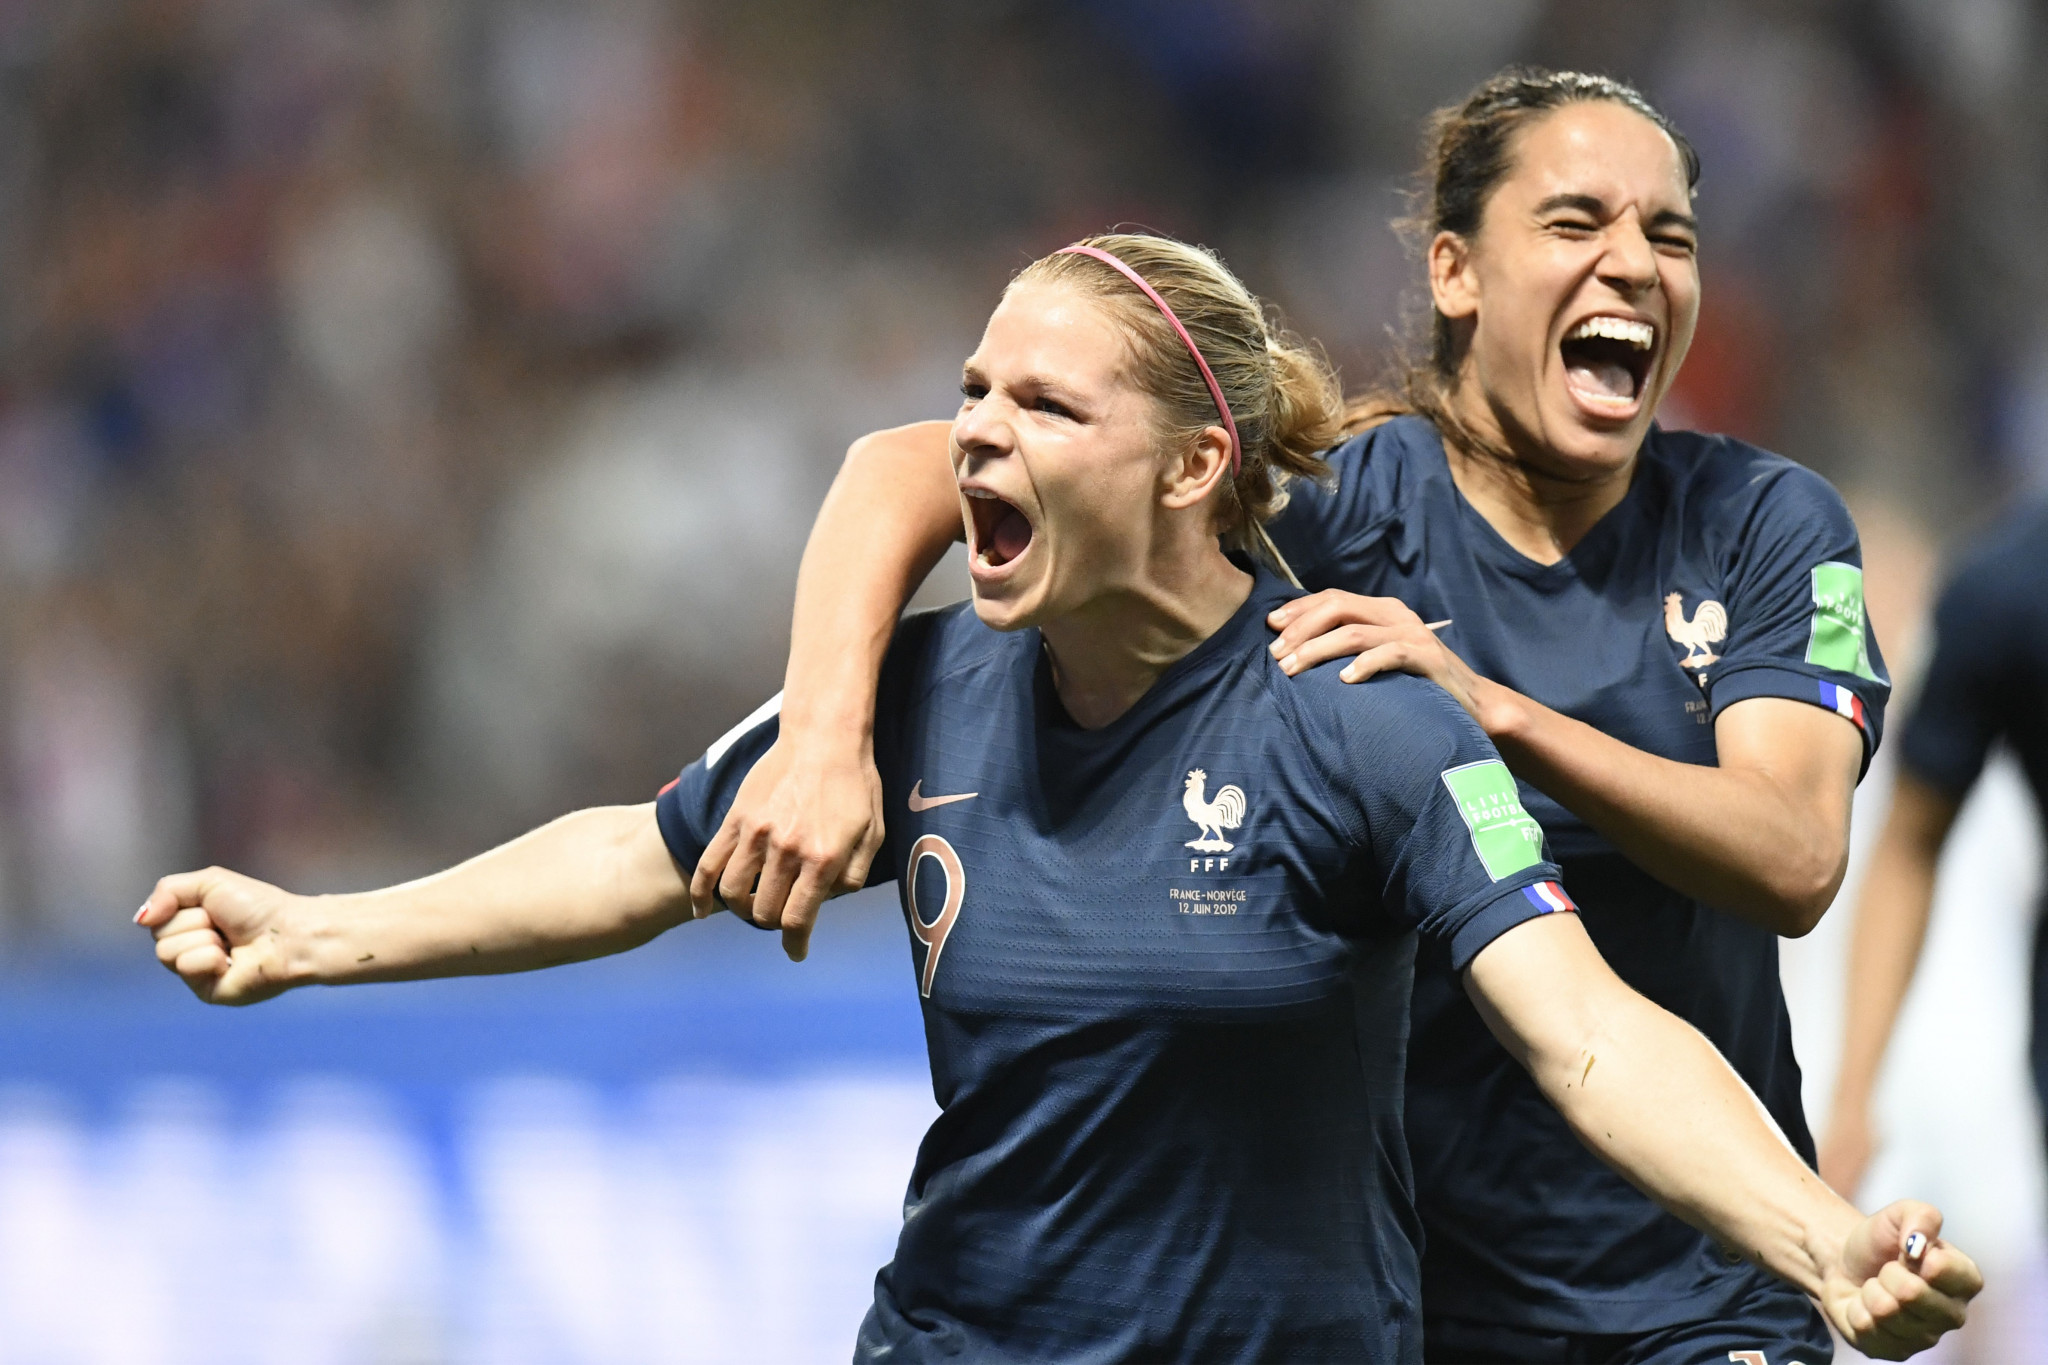 France on brink of progress at FIFA Women's World Cup after win over Norway